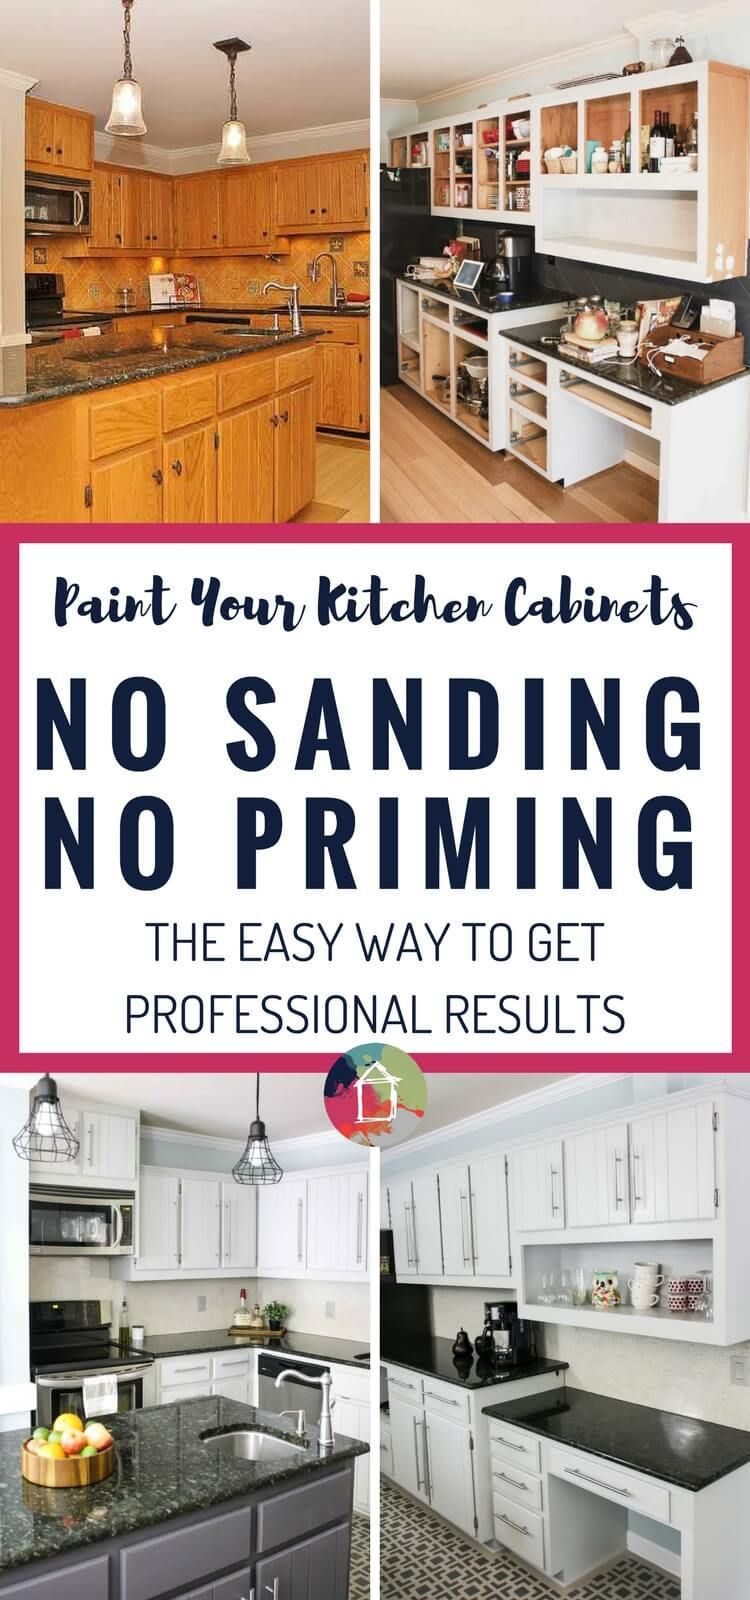 How To Paint Kitchen Cabinets Without Sanding or Priming - Step by ...